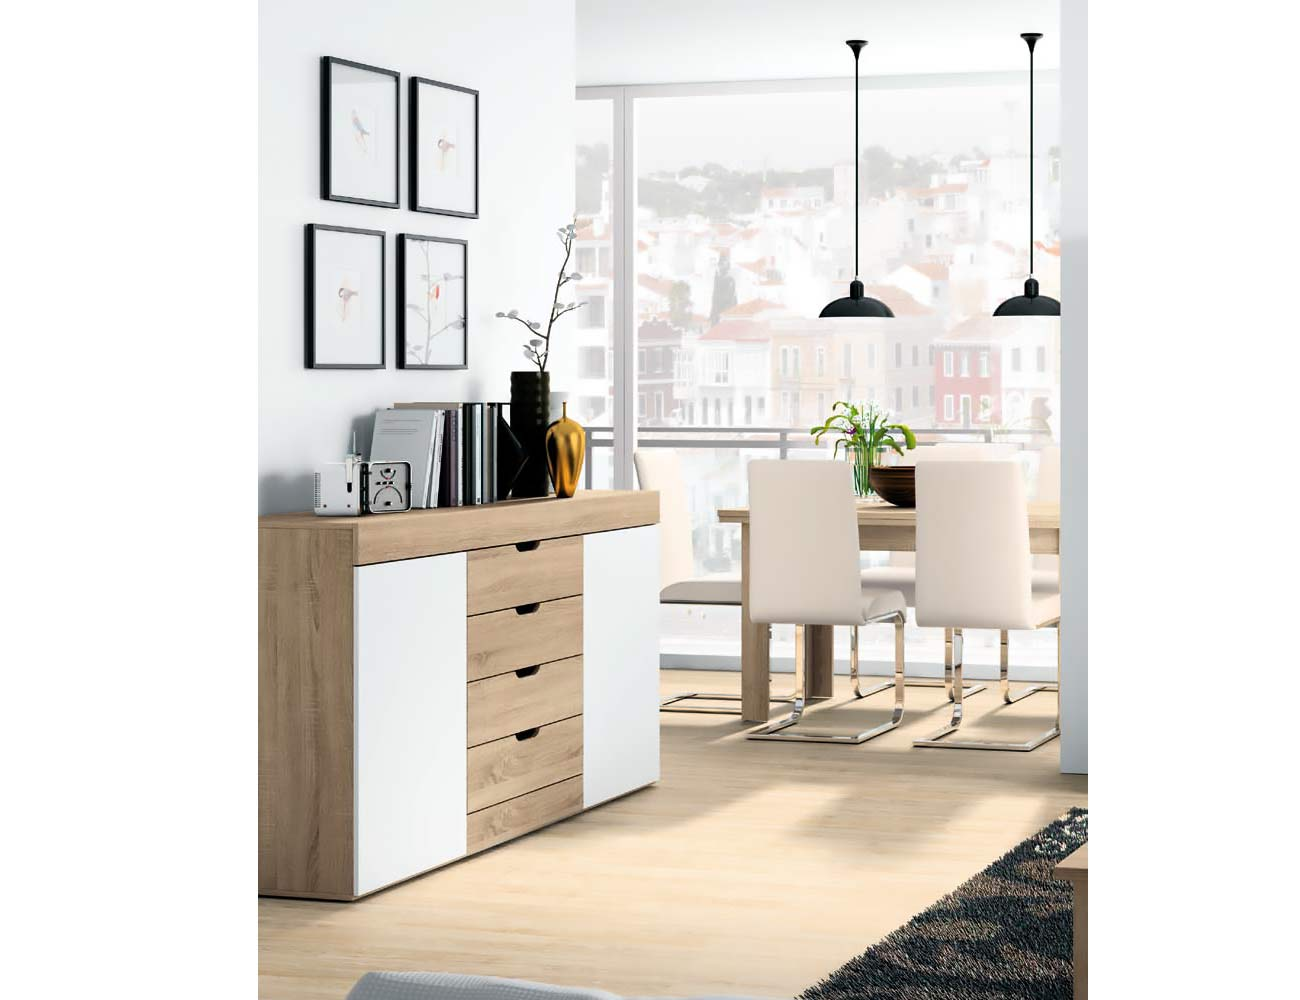 Mueble de sal n estilo moderno en cambrian con blanco for Factory del mueble melero